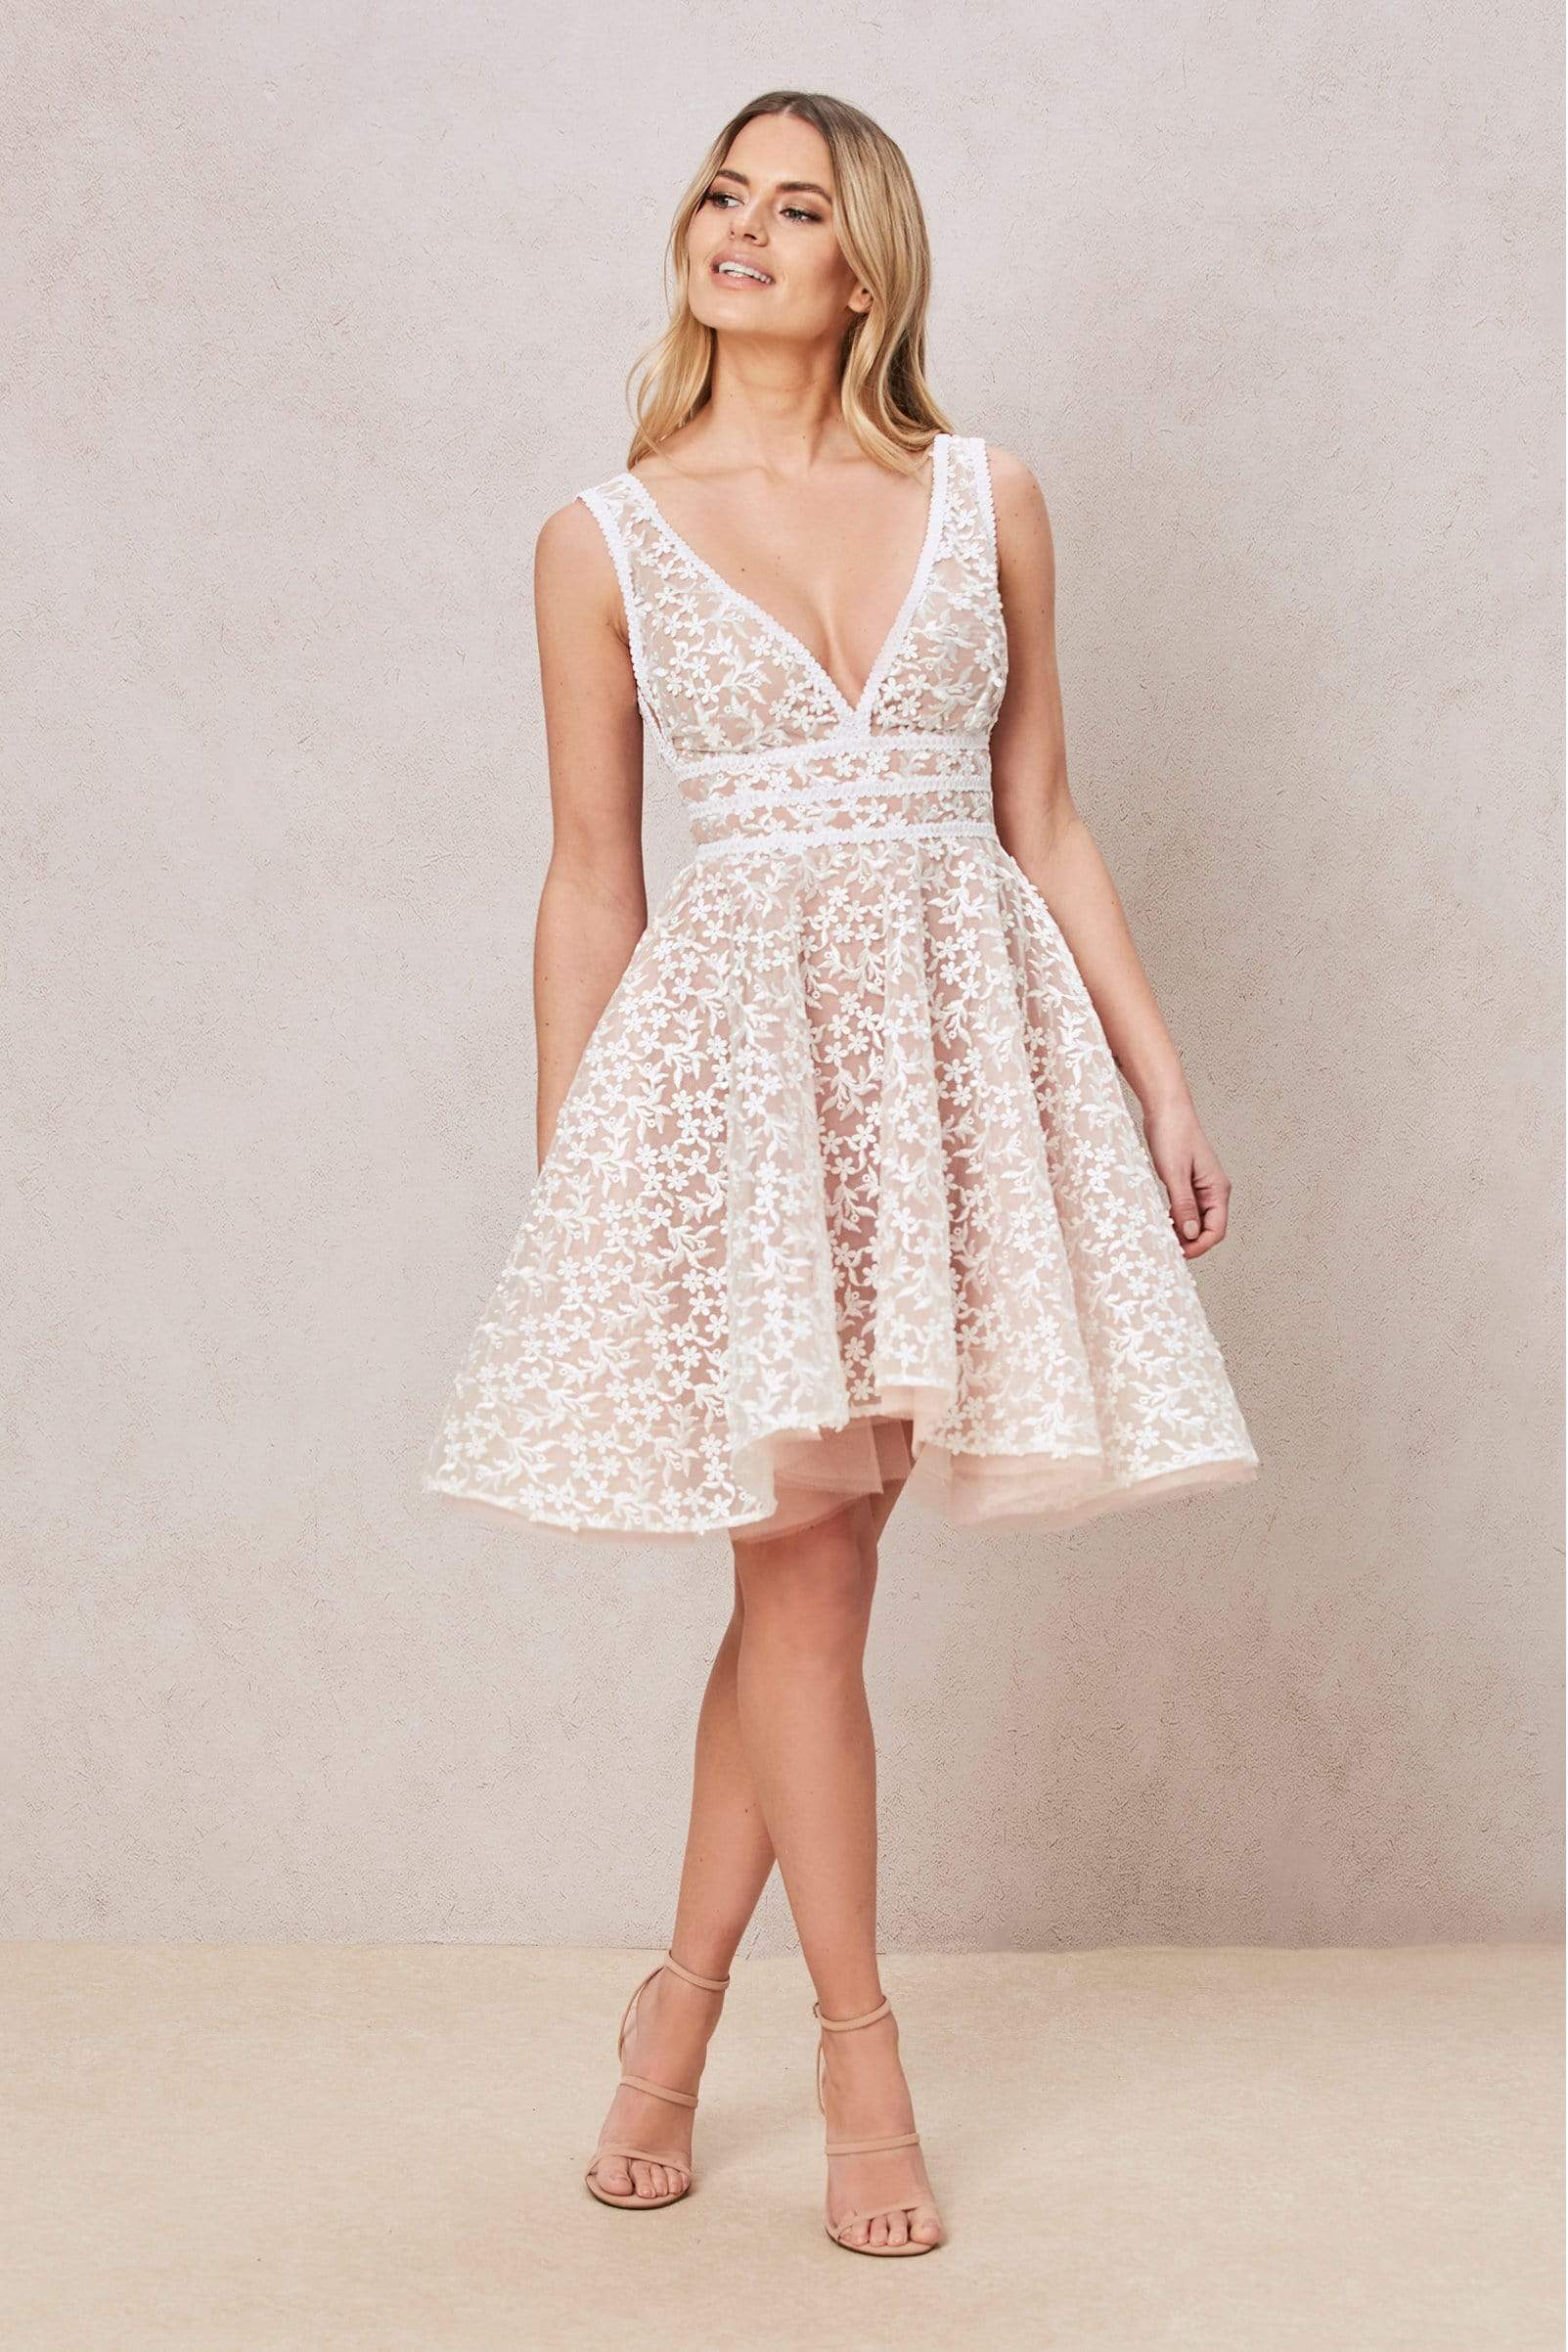 bride outfits, white outfits, bridal fashion, rehearsal dinner dress, bachelorette party dress, wedding shower dress, bridal shower dress, rehearsal dinner outfit, 2021 bride, blogger bride, 2021 blogger bride, 2021 wedding, little white dress, white dress wedding, olivia rink wedding ideas, olivia rink wedding, olivia rink rehearsal